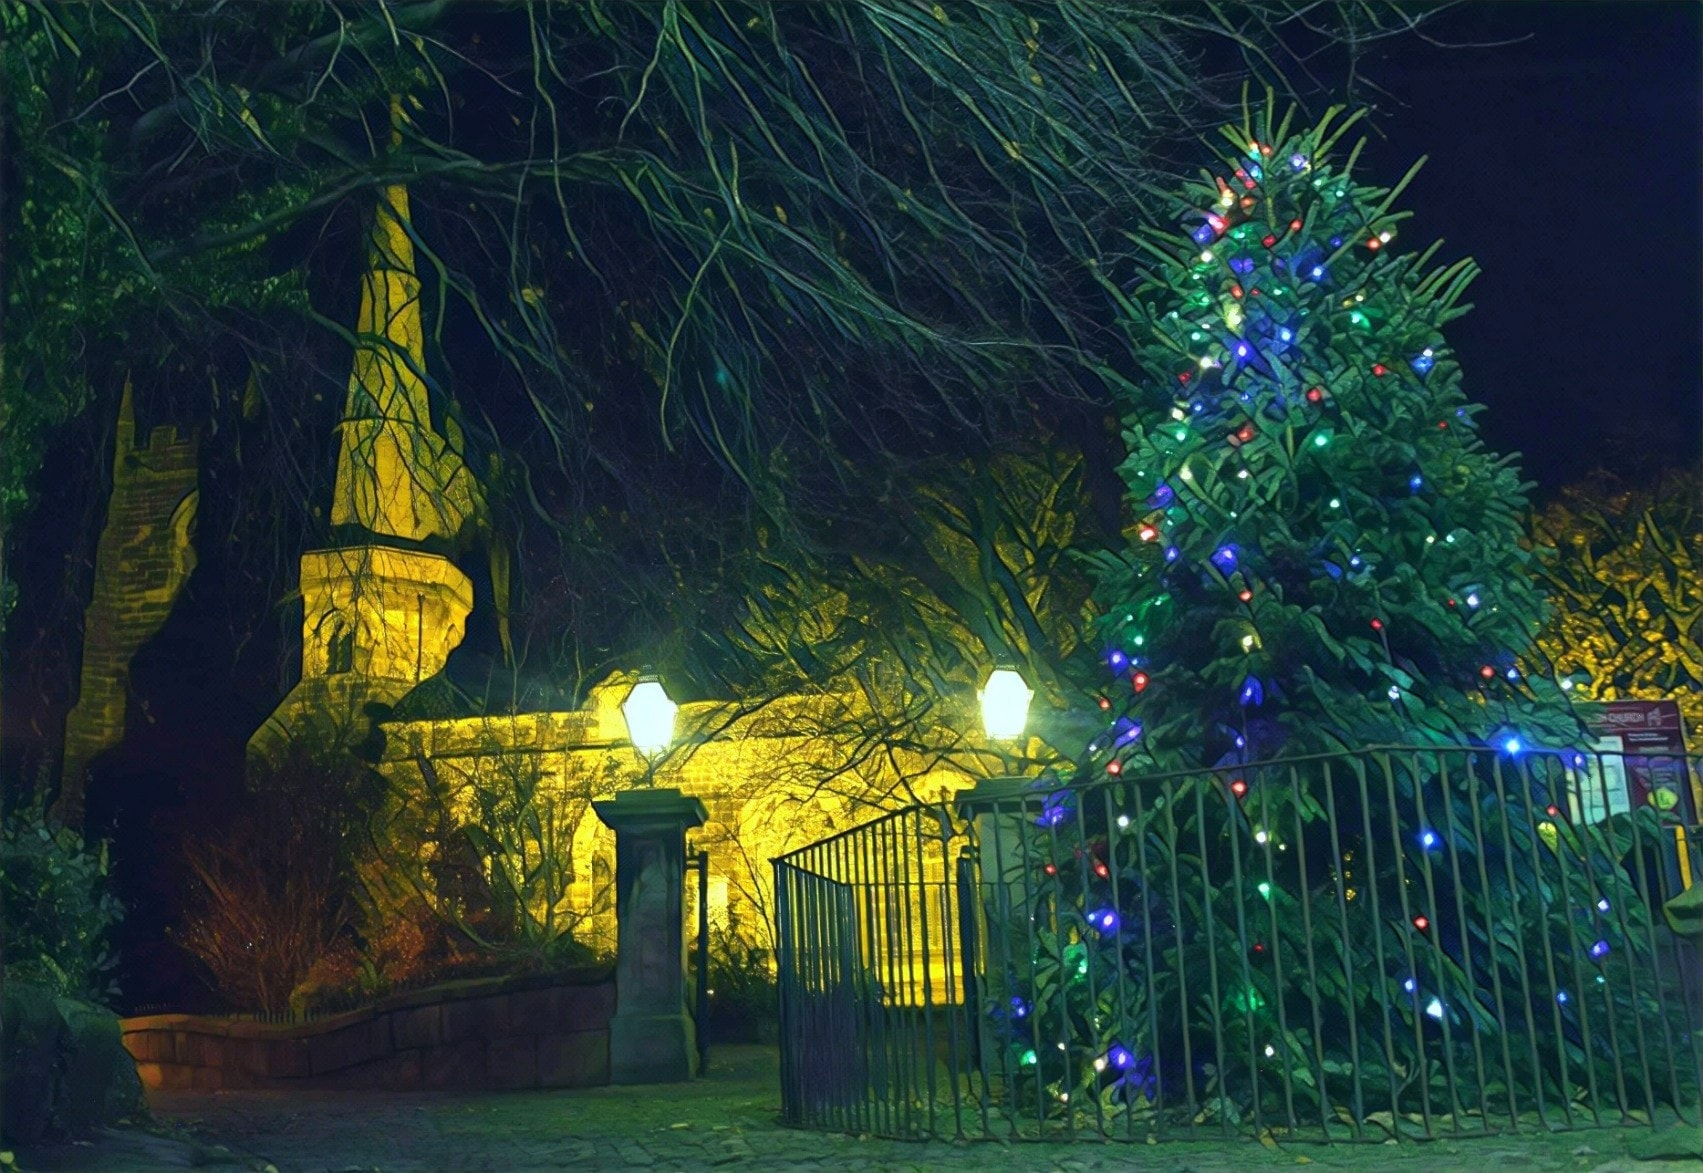 Public support needed for festive tree